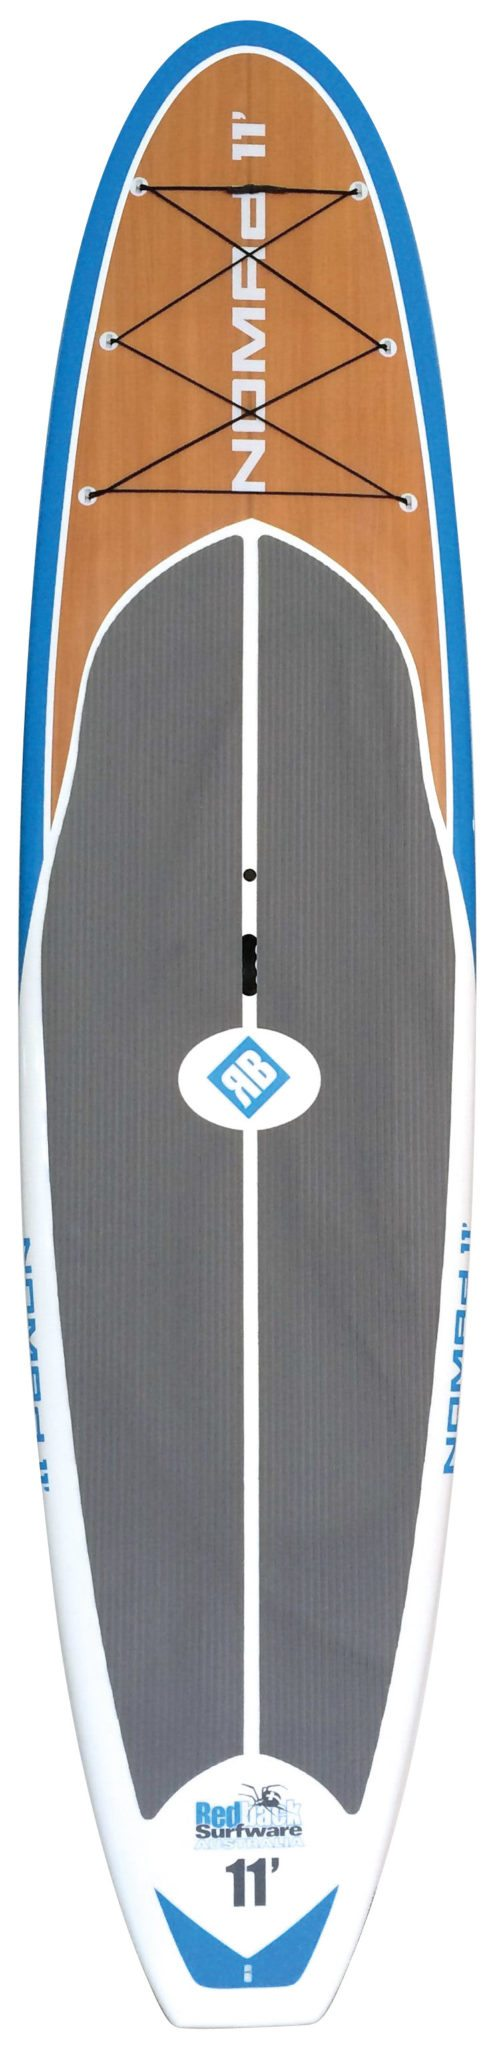 11 foot Nomad epoxy paddle board